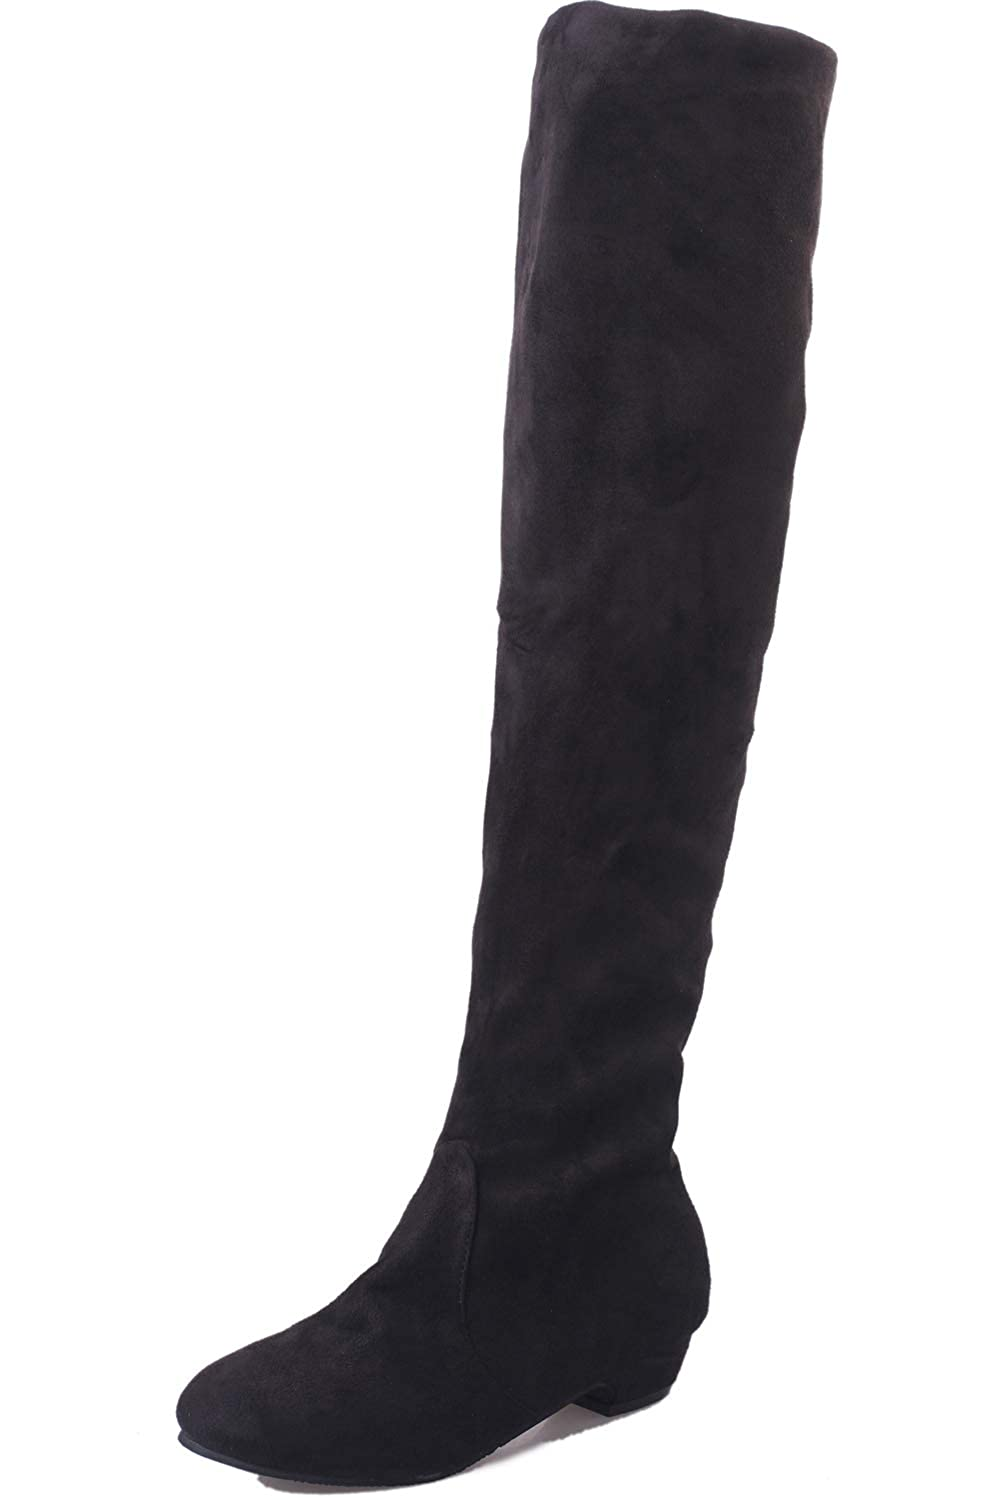 FORTUN Womens Over The Knee Boots Elegant Boots Knight Boots